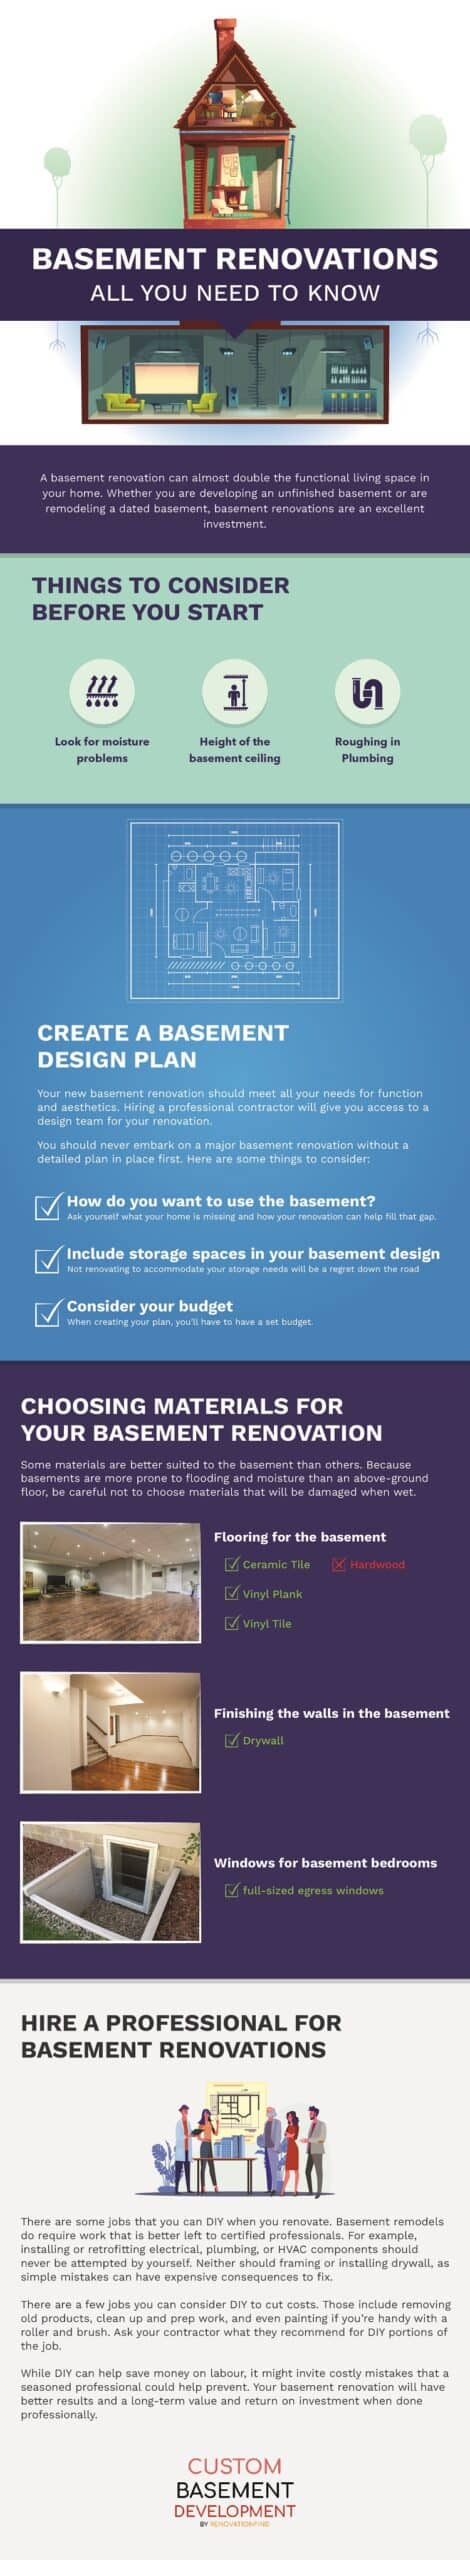 Infographic - Basement Renovations All you need to Know